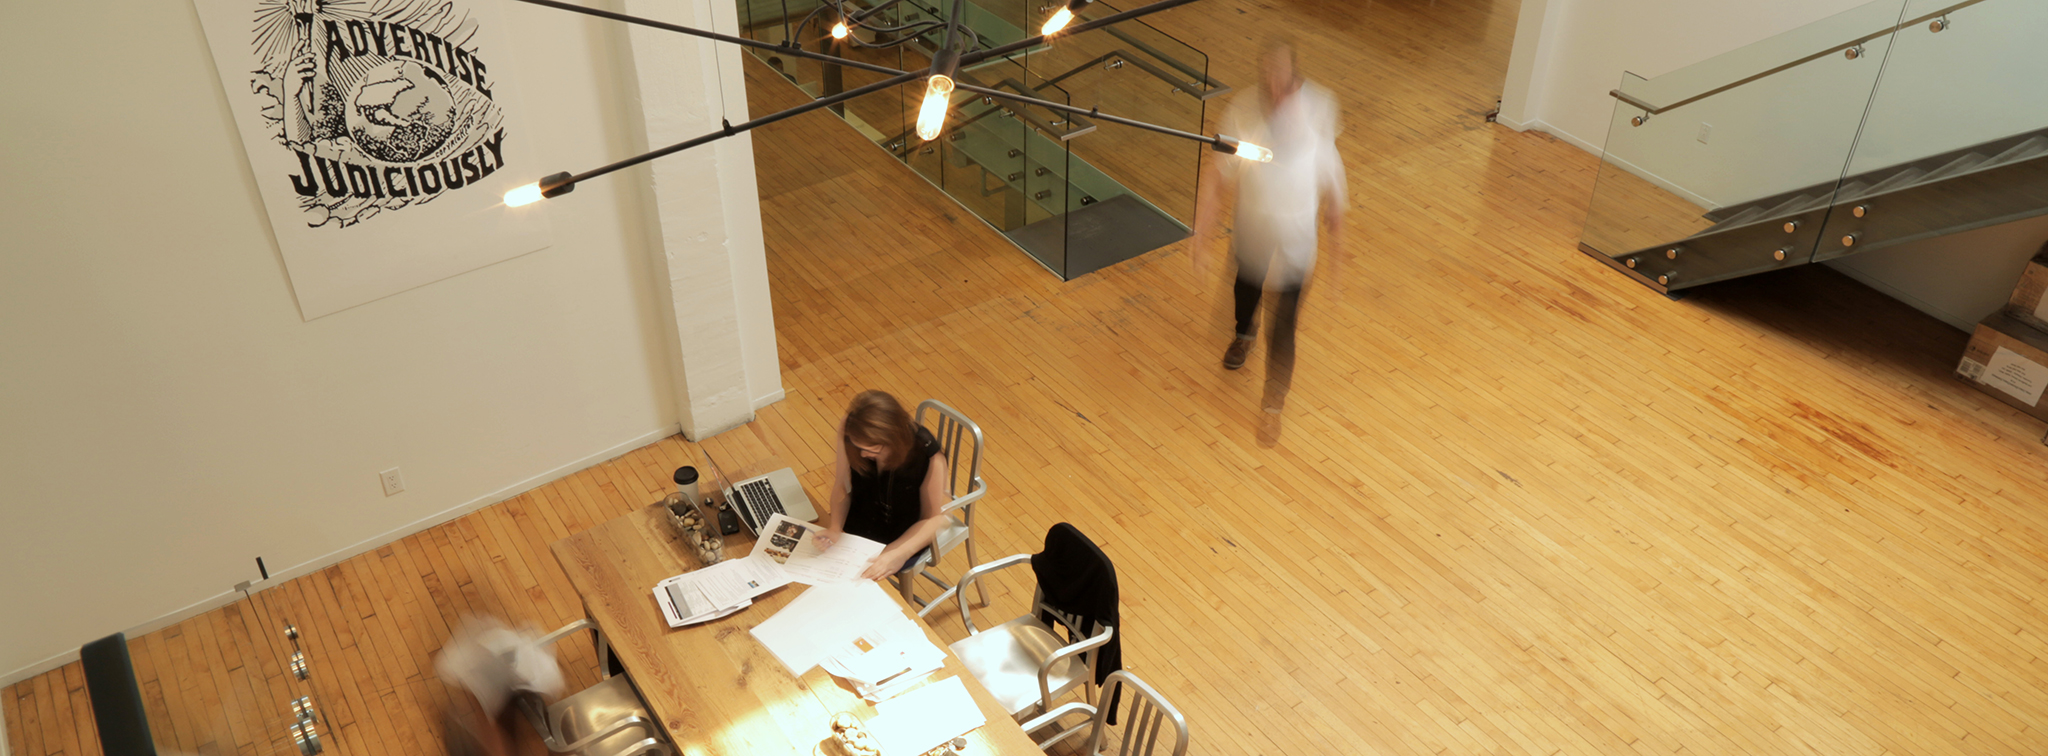 Full service ad agency FCB Hard at work in the open space office design